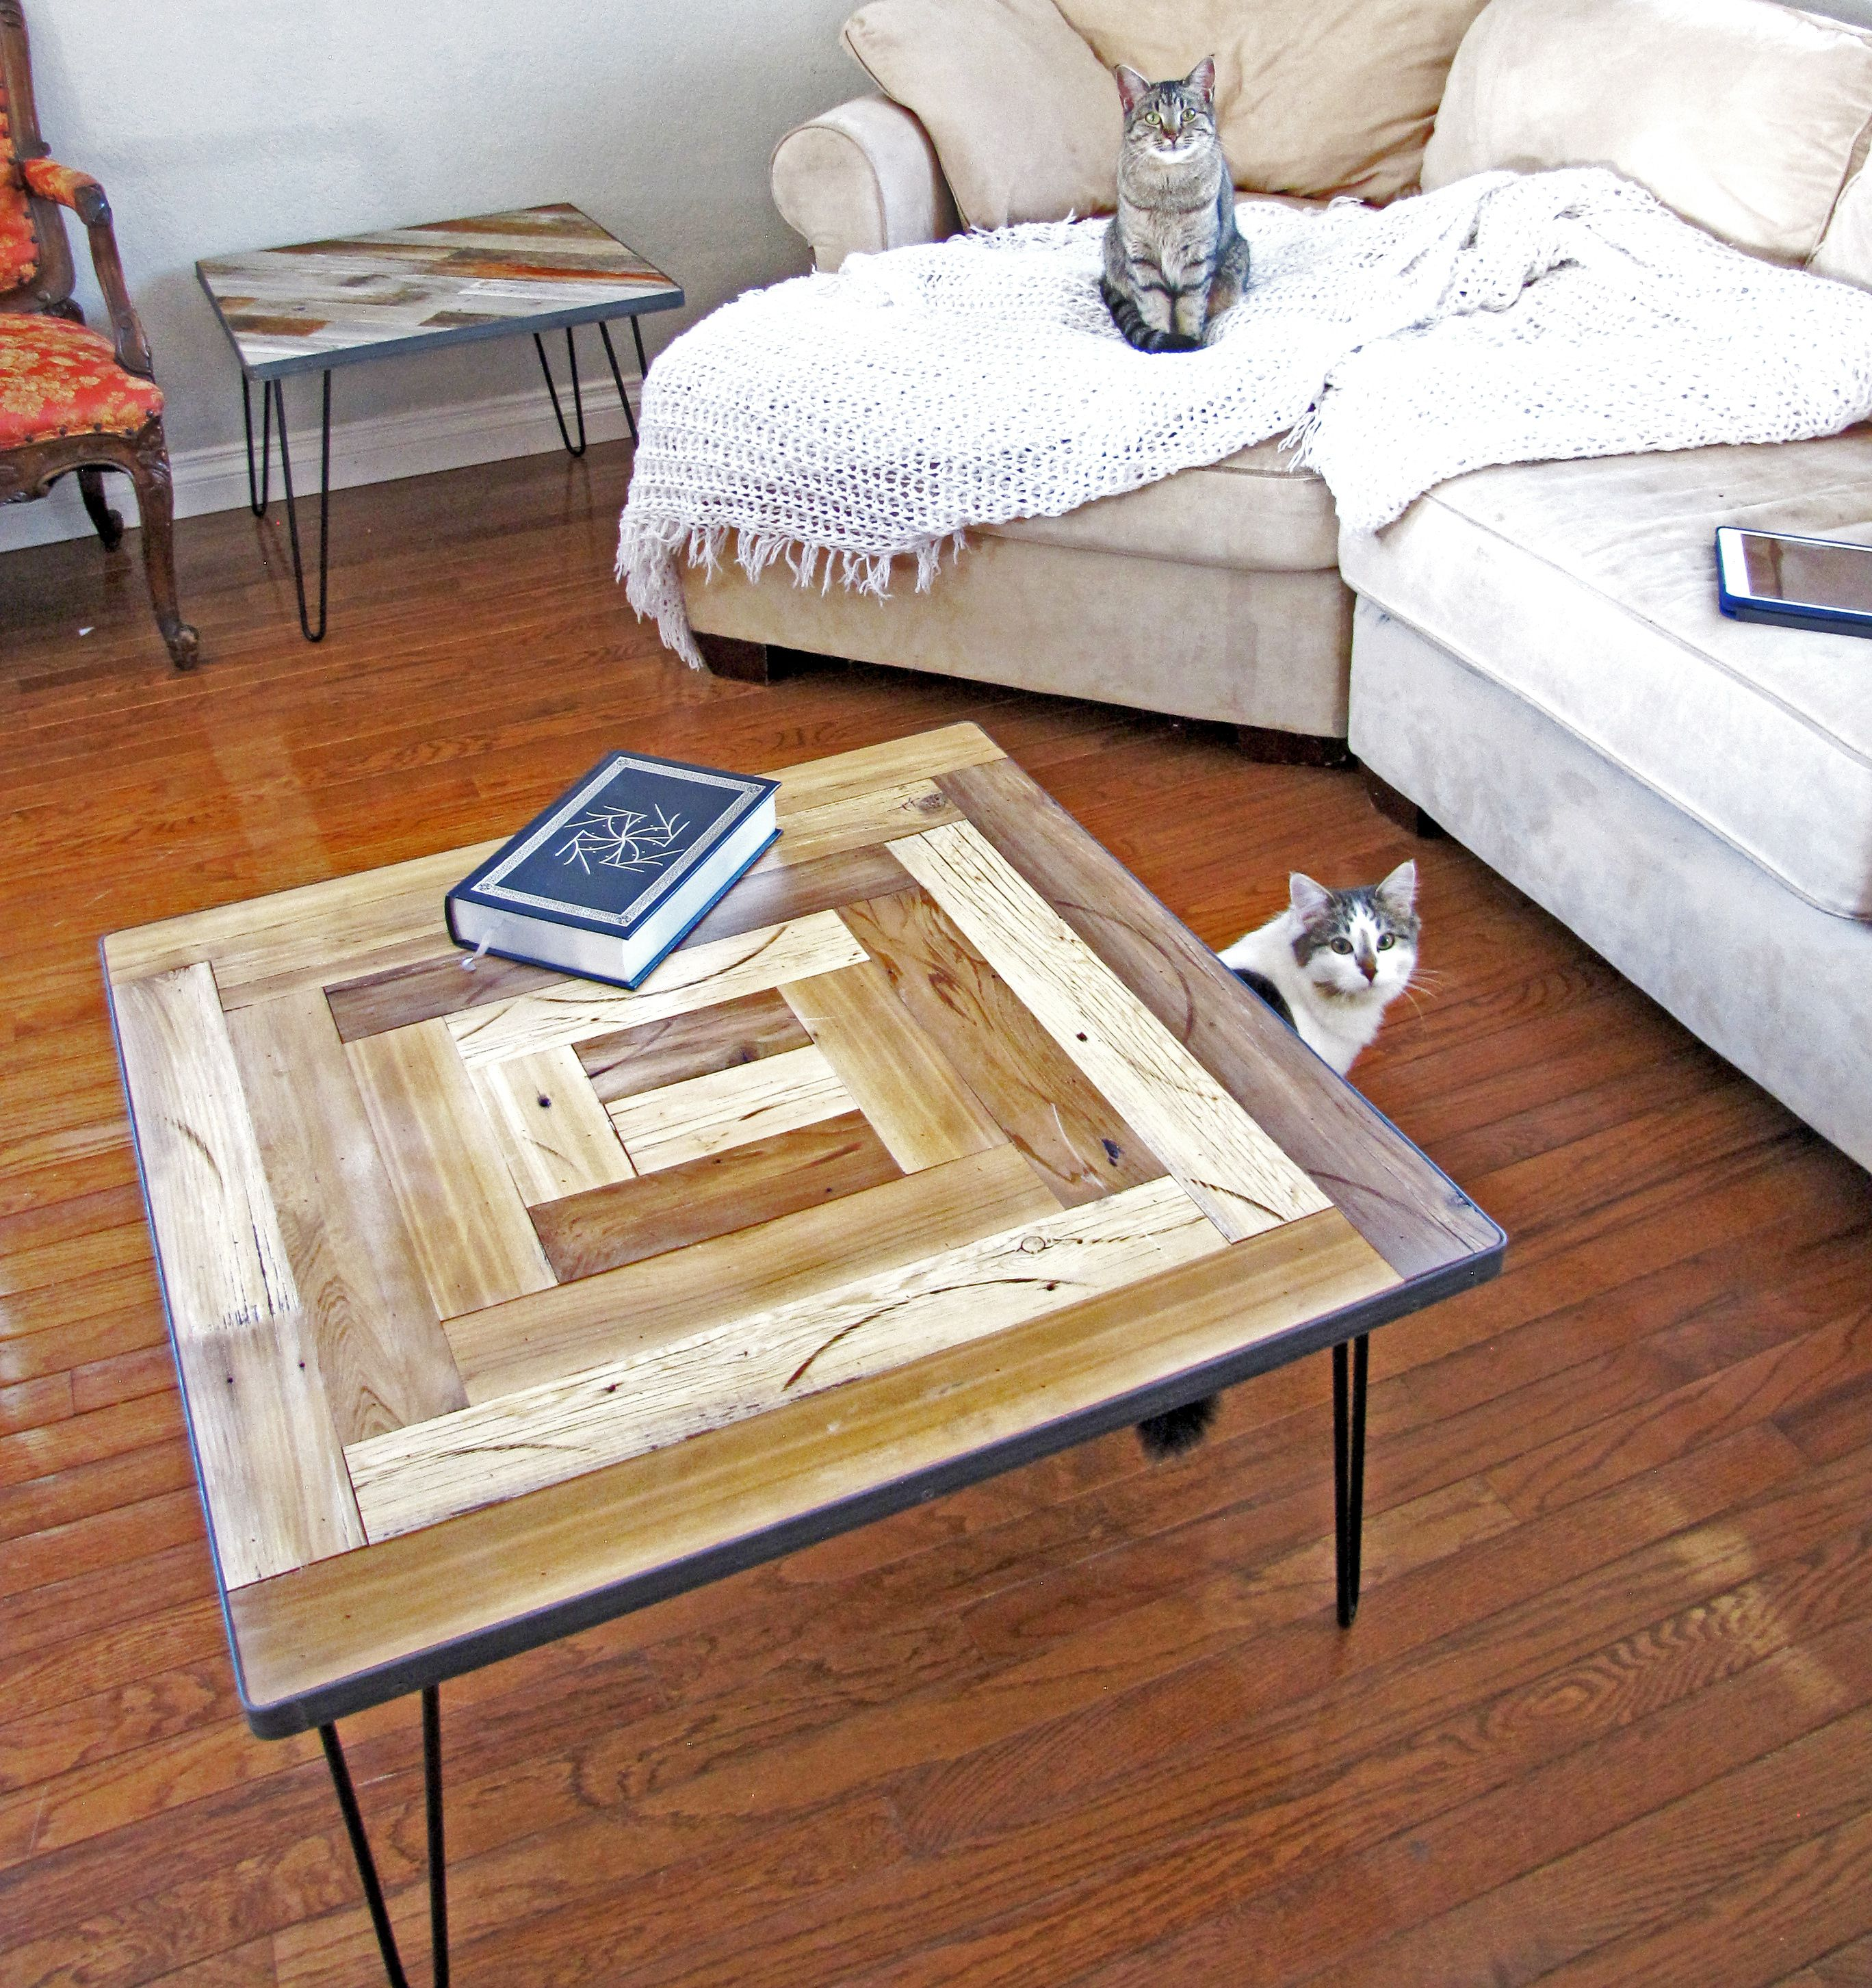 Our New Square Reclaimed Barn Wood Modern Farmhouse Coffee Table Looks Great Everywher Modern Farmhouse Coffee Table Coffee Table Farmhouse Reclaimed Barn Wood [ 2905 x 2736 Pixel ]